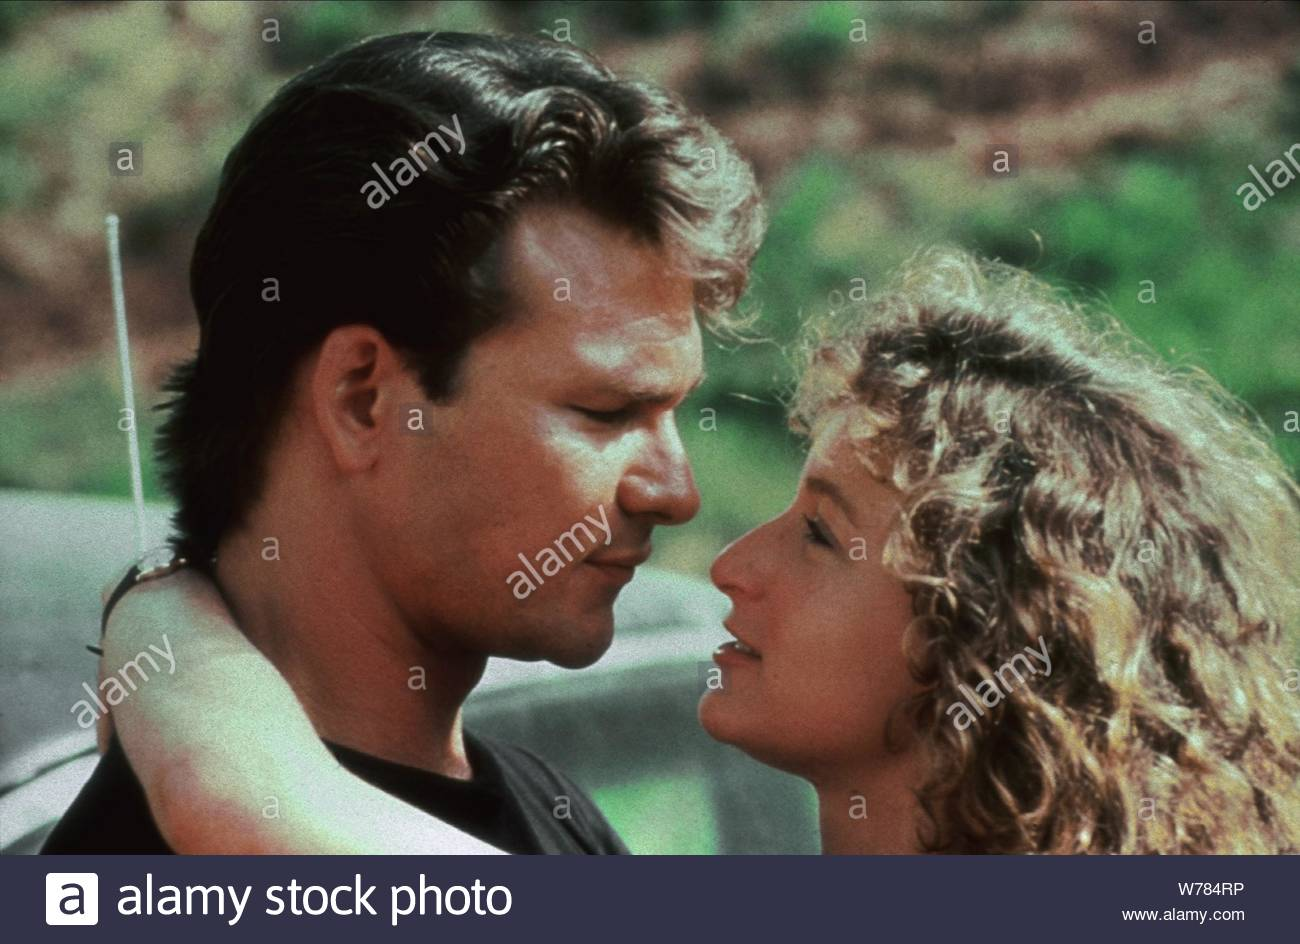 Patrick Swayze Jennifer Grey Dirty Dancing 1987 Stock Photo Alamy